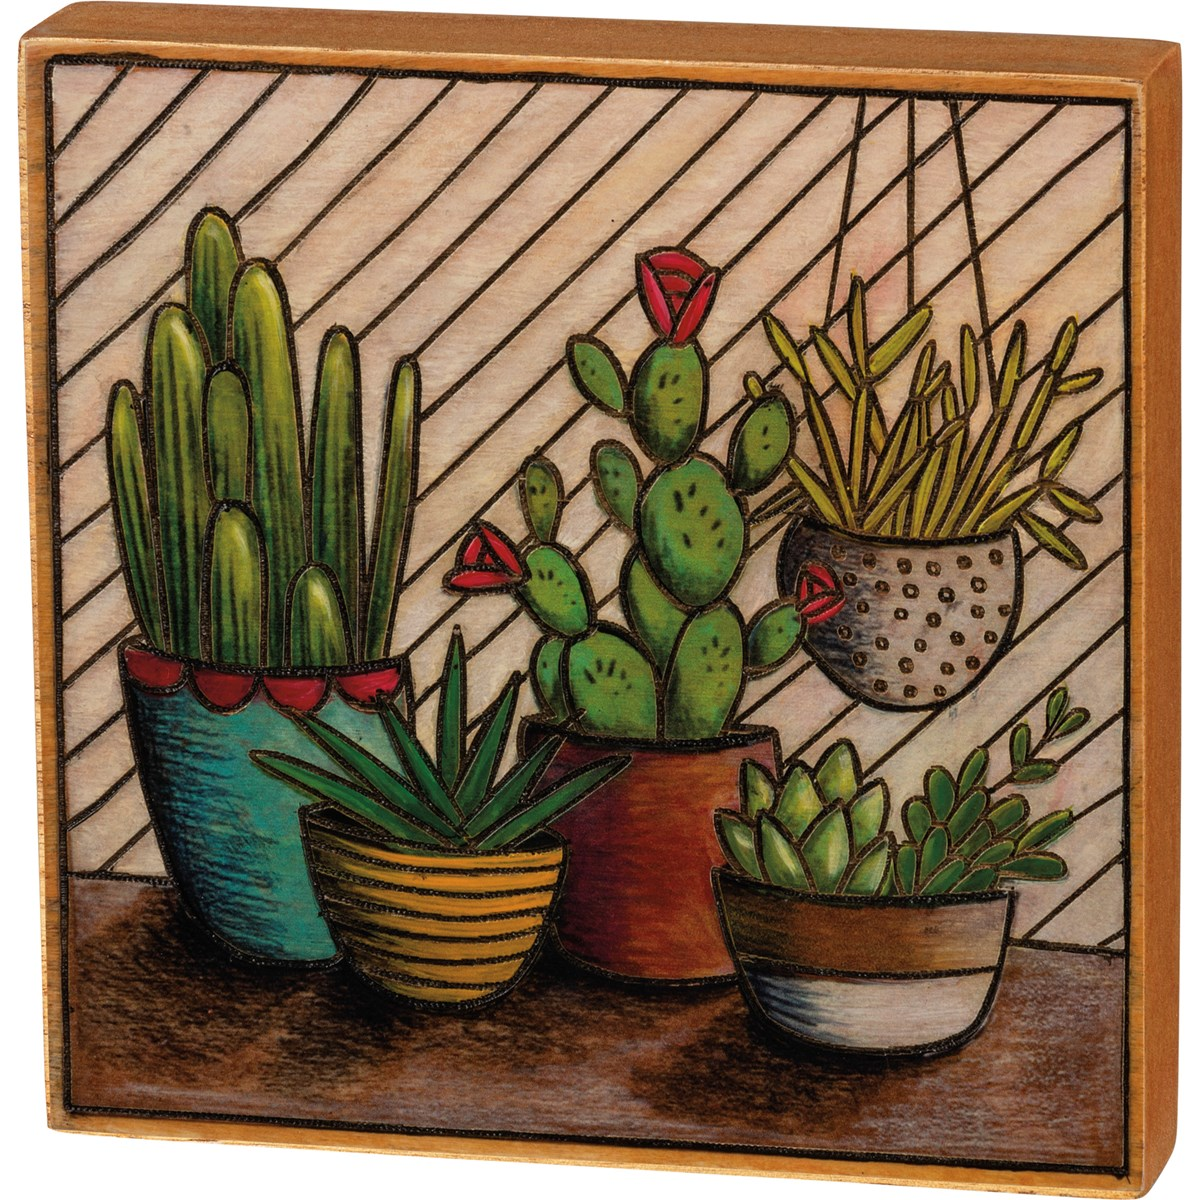 "Block Sign - Cactus - 5.75"" x 5.50"" x 1"" - Wood"